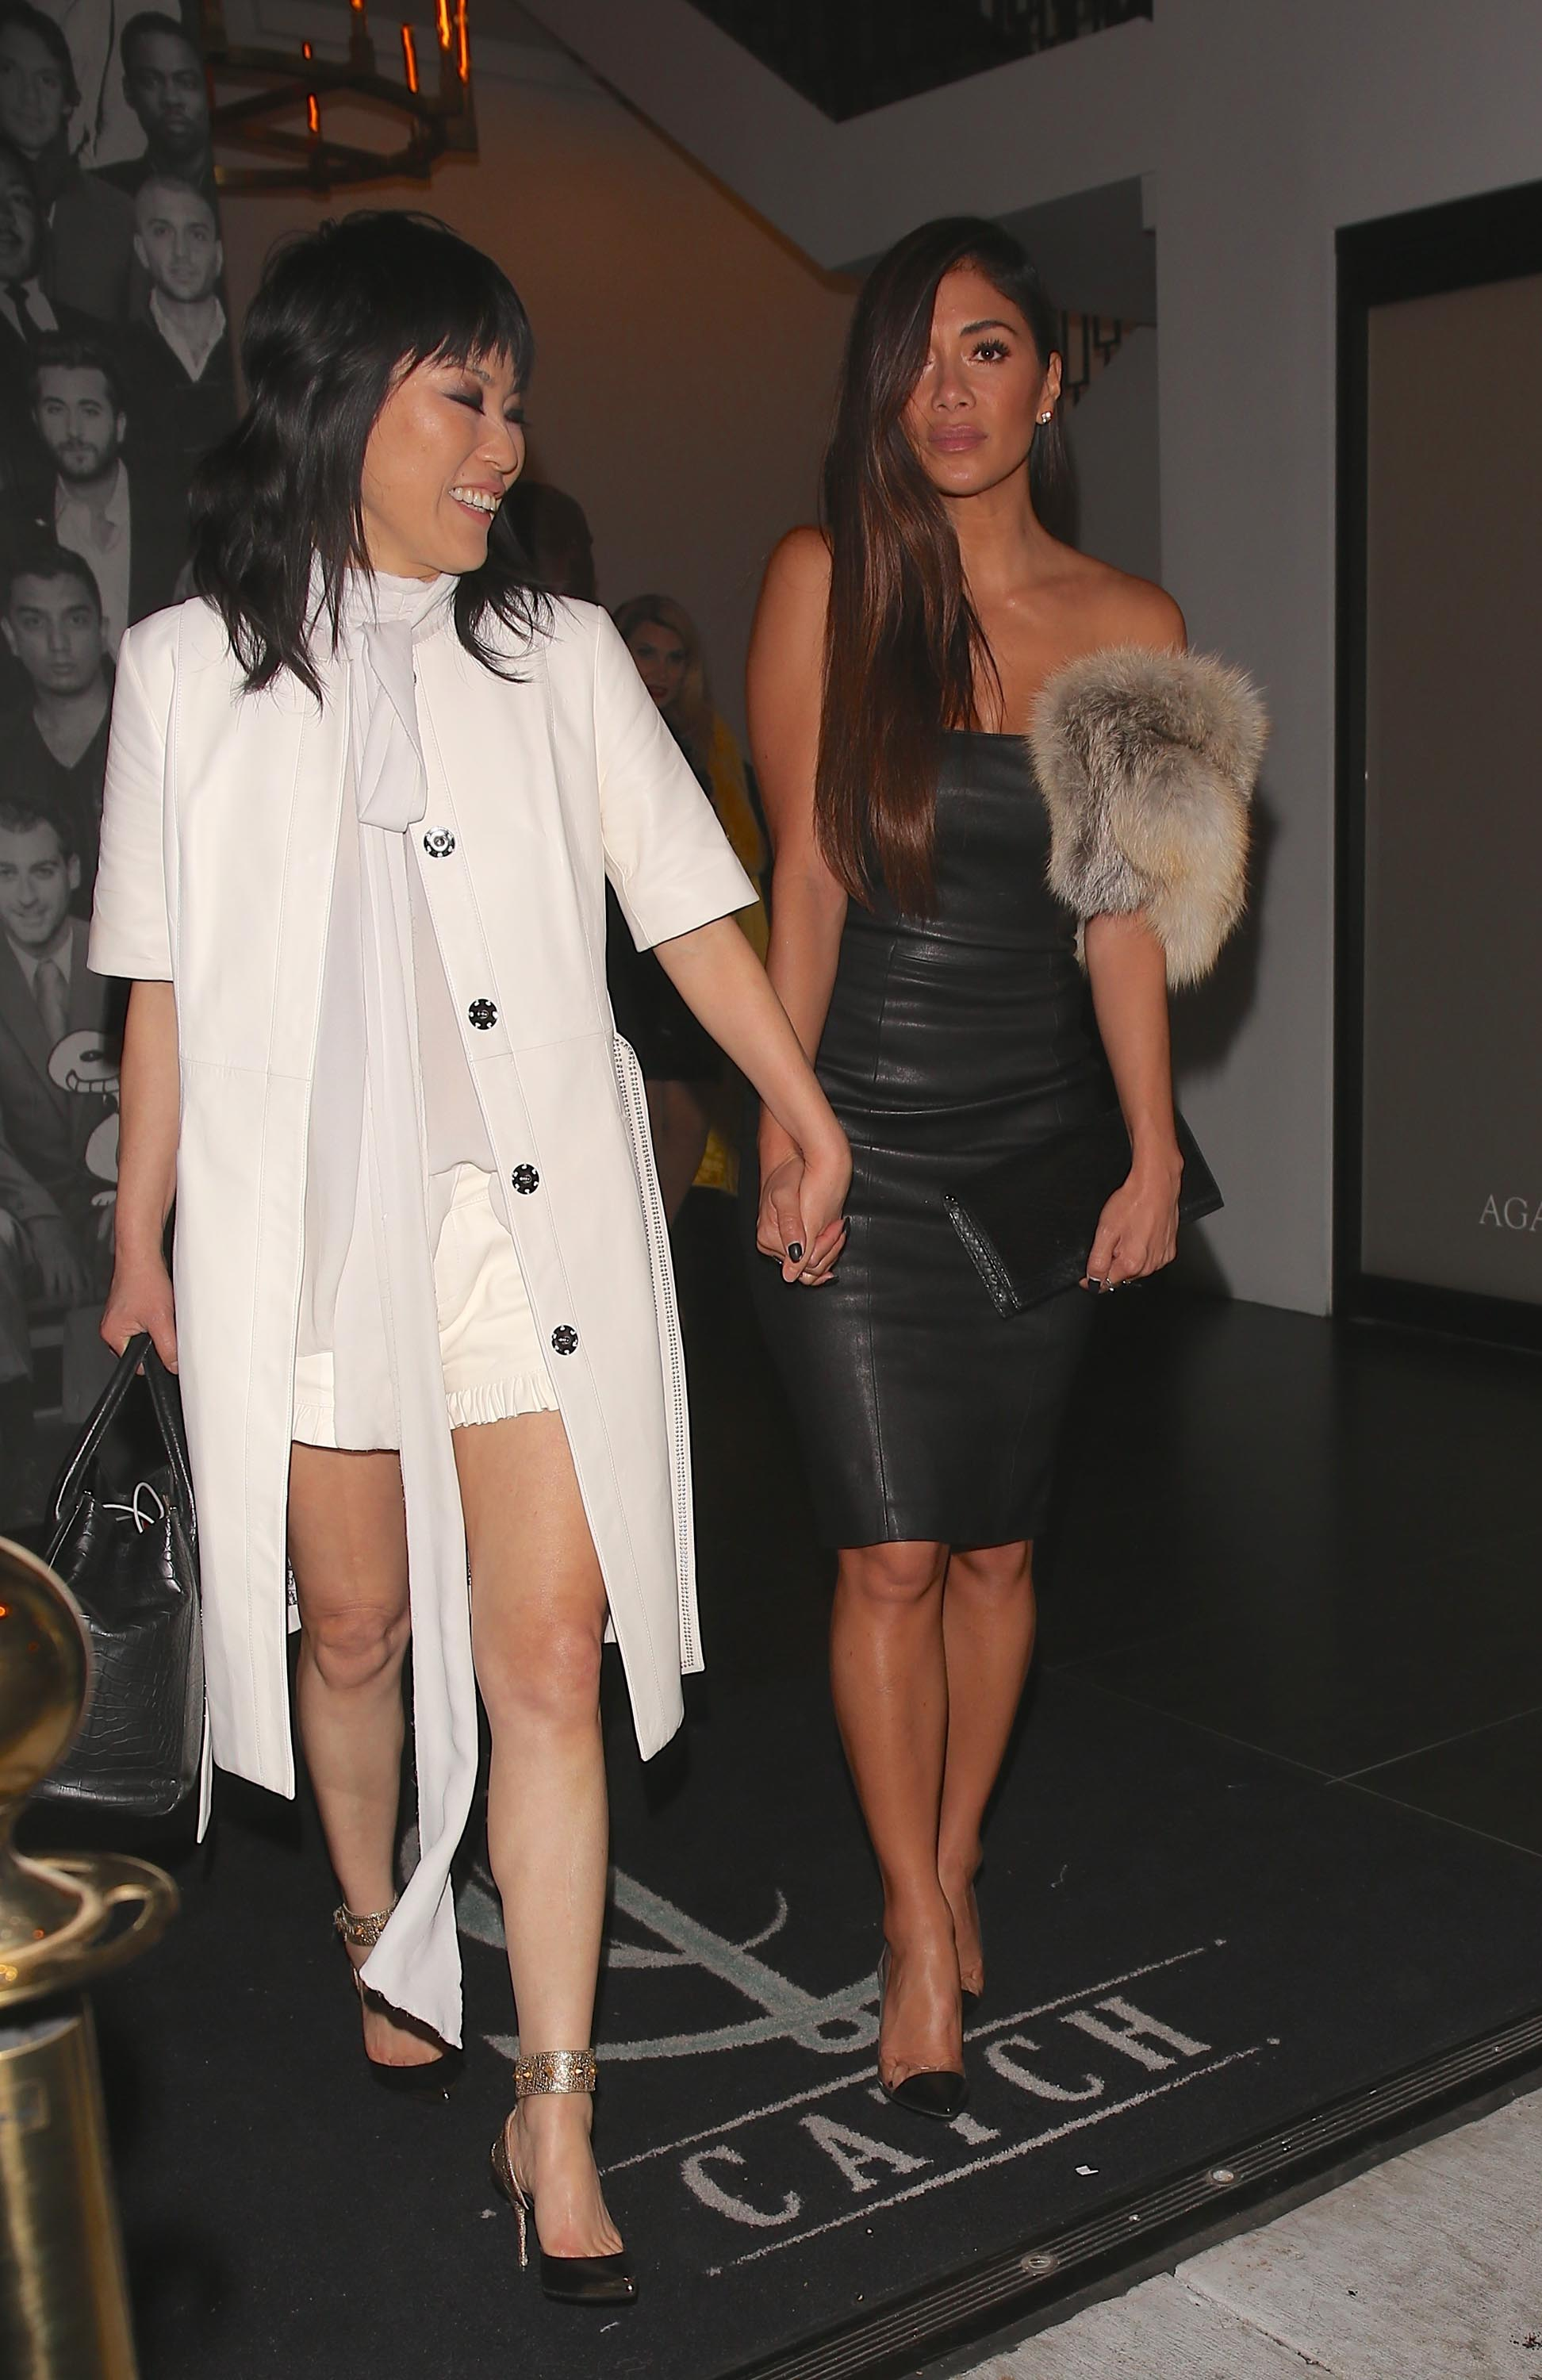 Nicole Scherzinger attends the debut of Thomas Wylde's 'Warrior II' collection